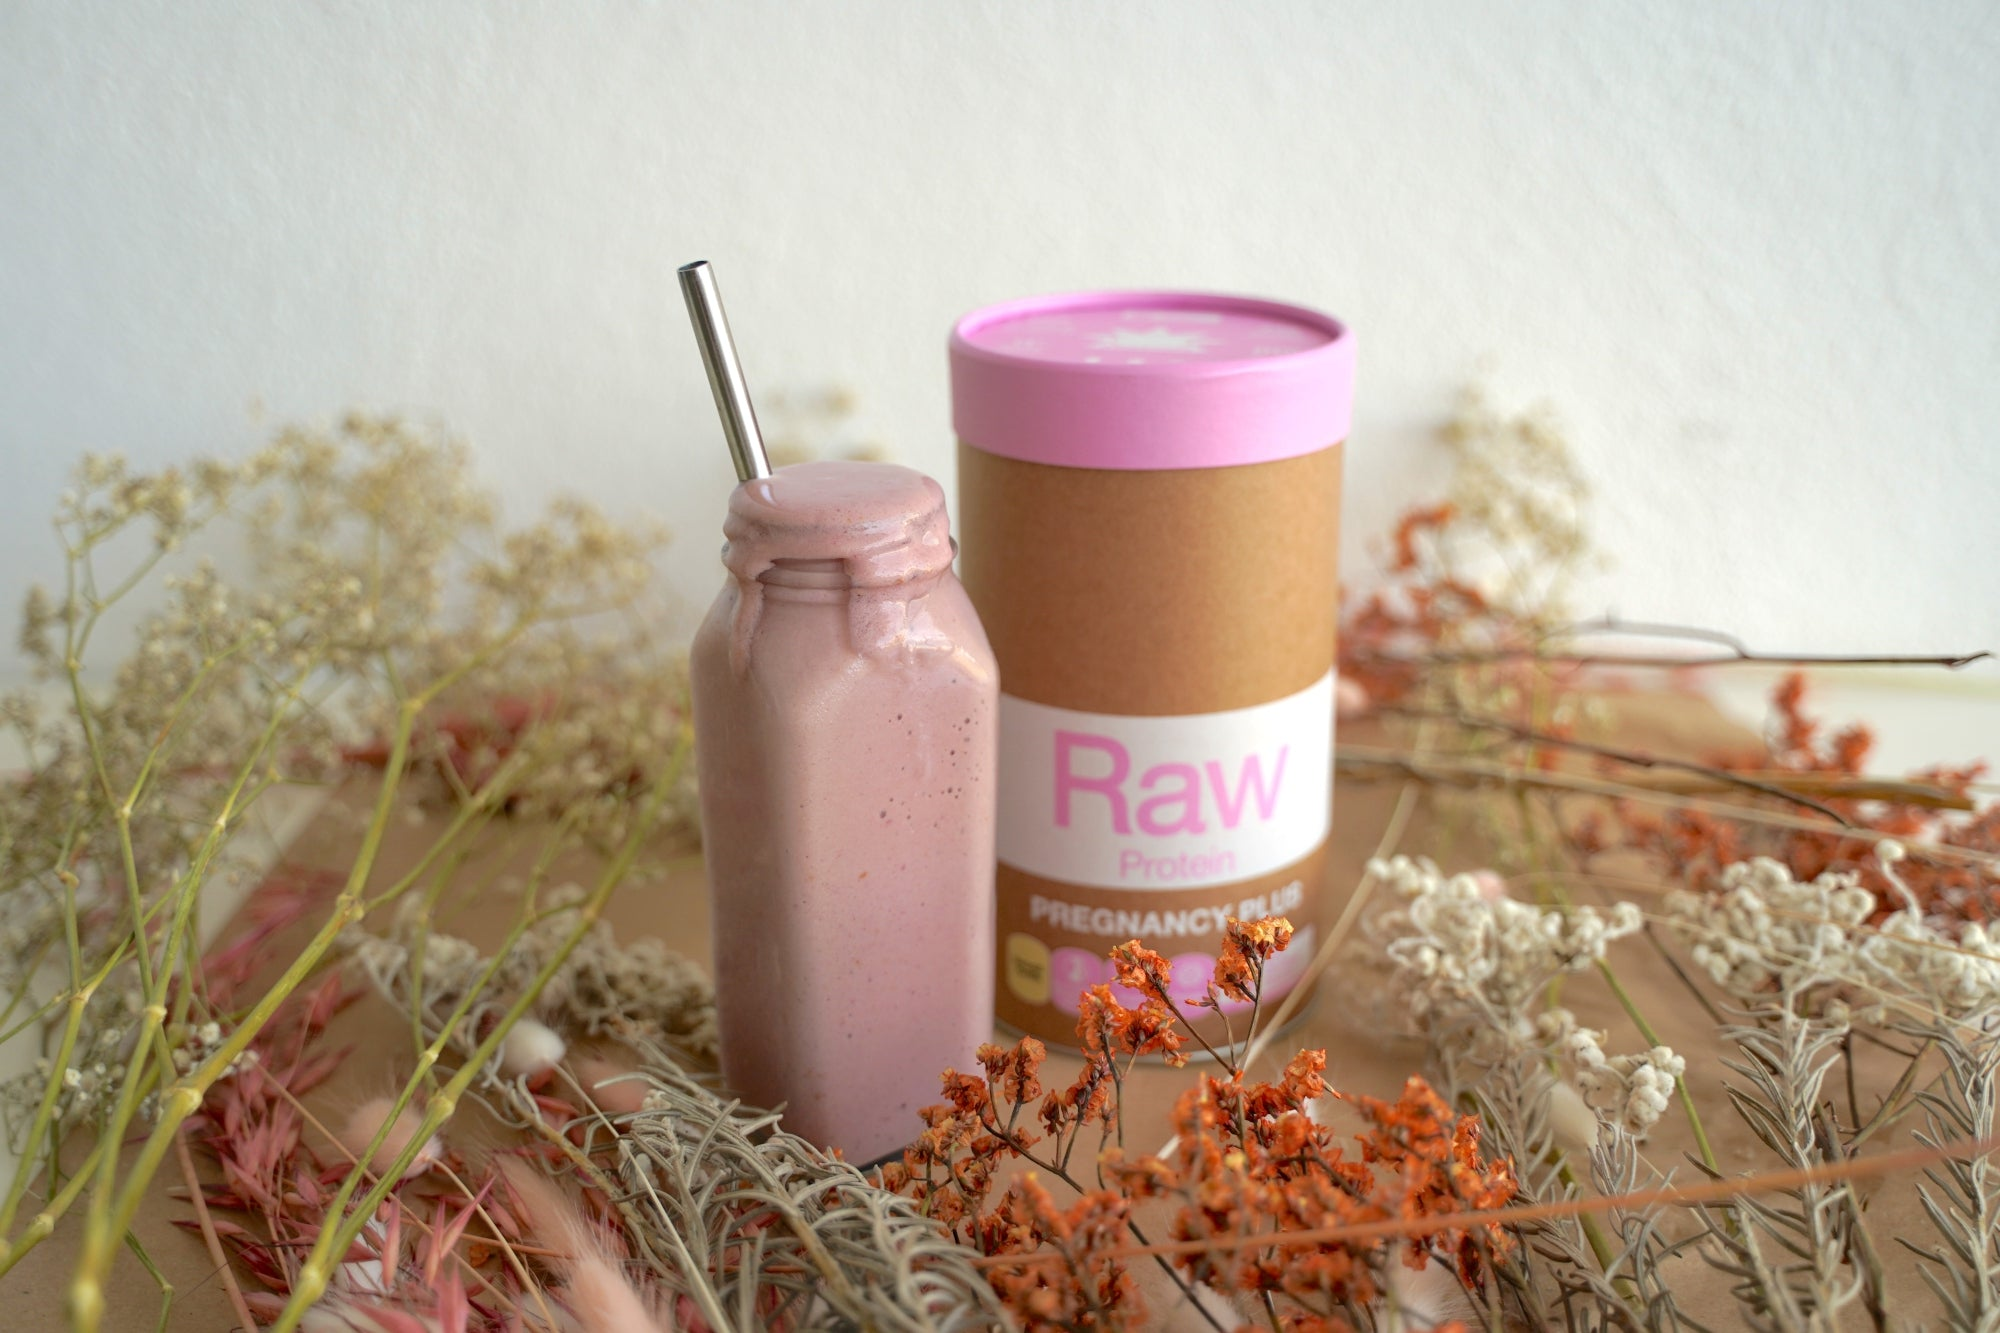 Raw Protein Pregnancy Plus smoothie